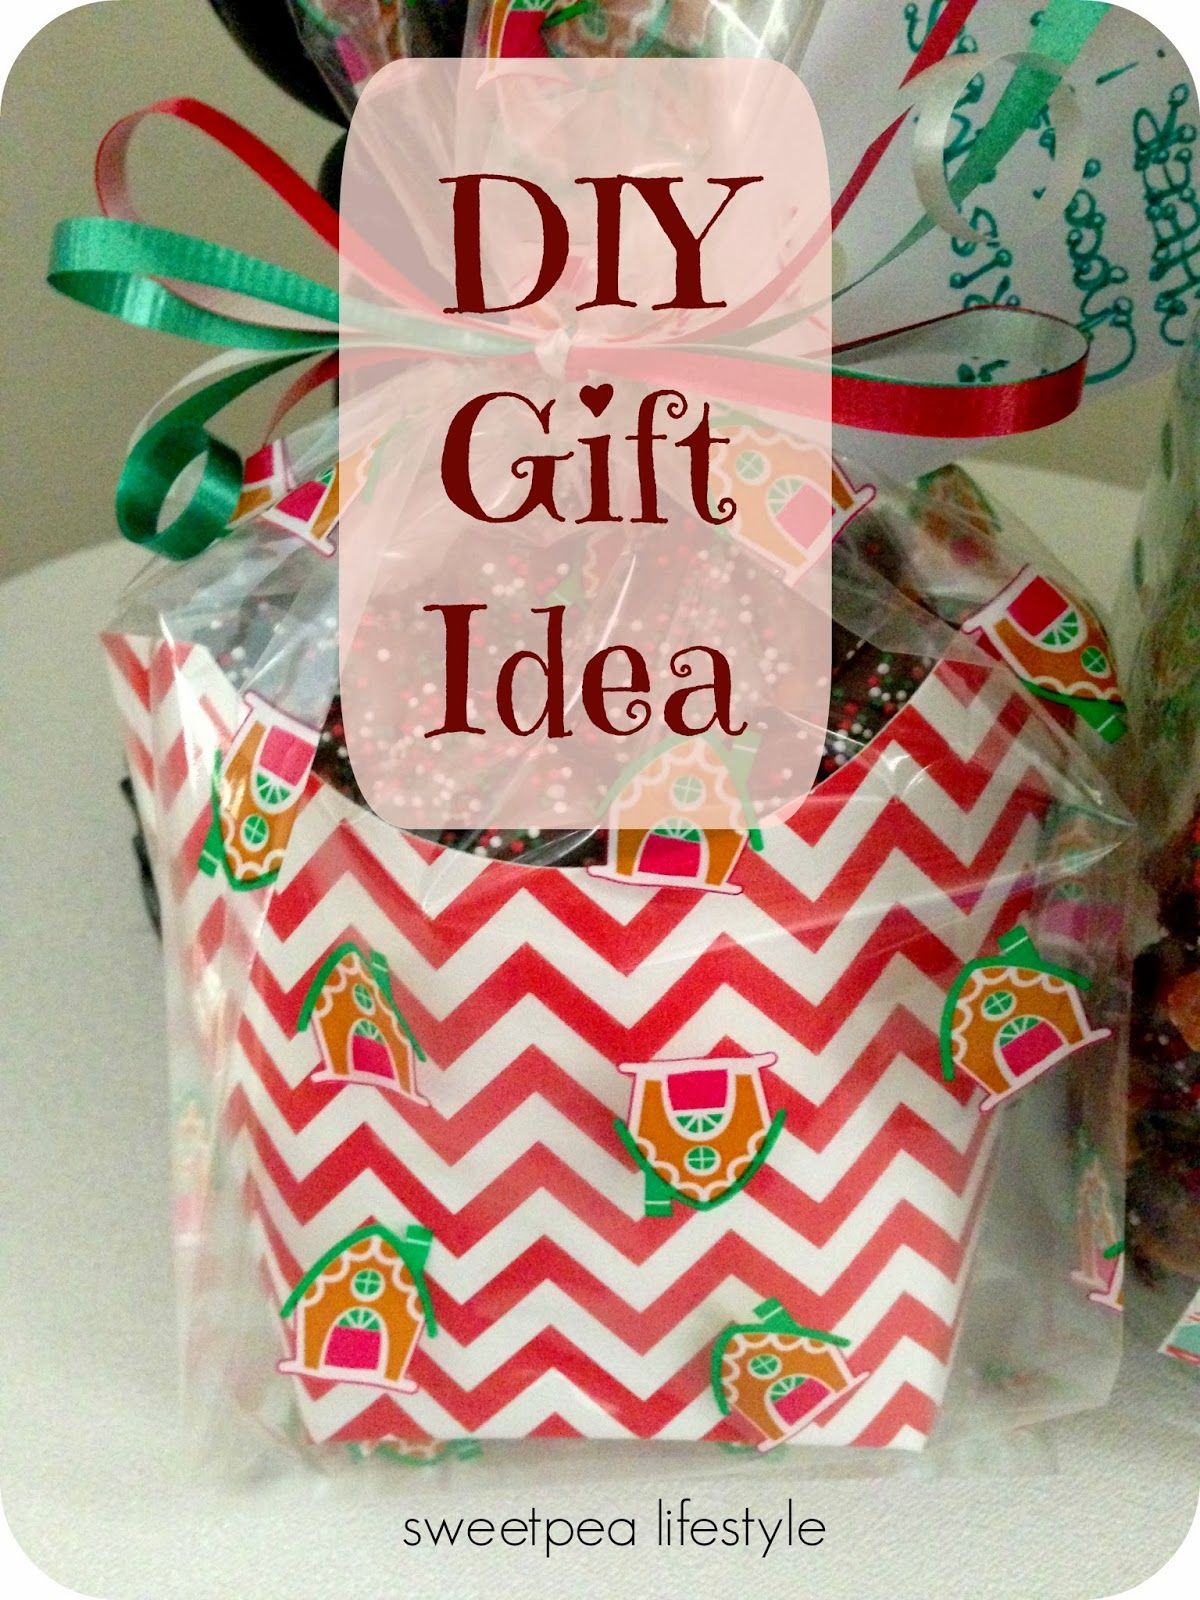 Diy Gift Idea Easy Chocolate Covered Pretzels In A Cute